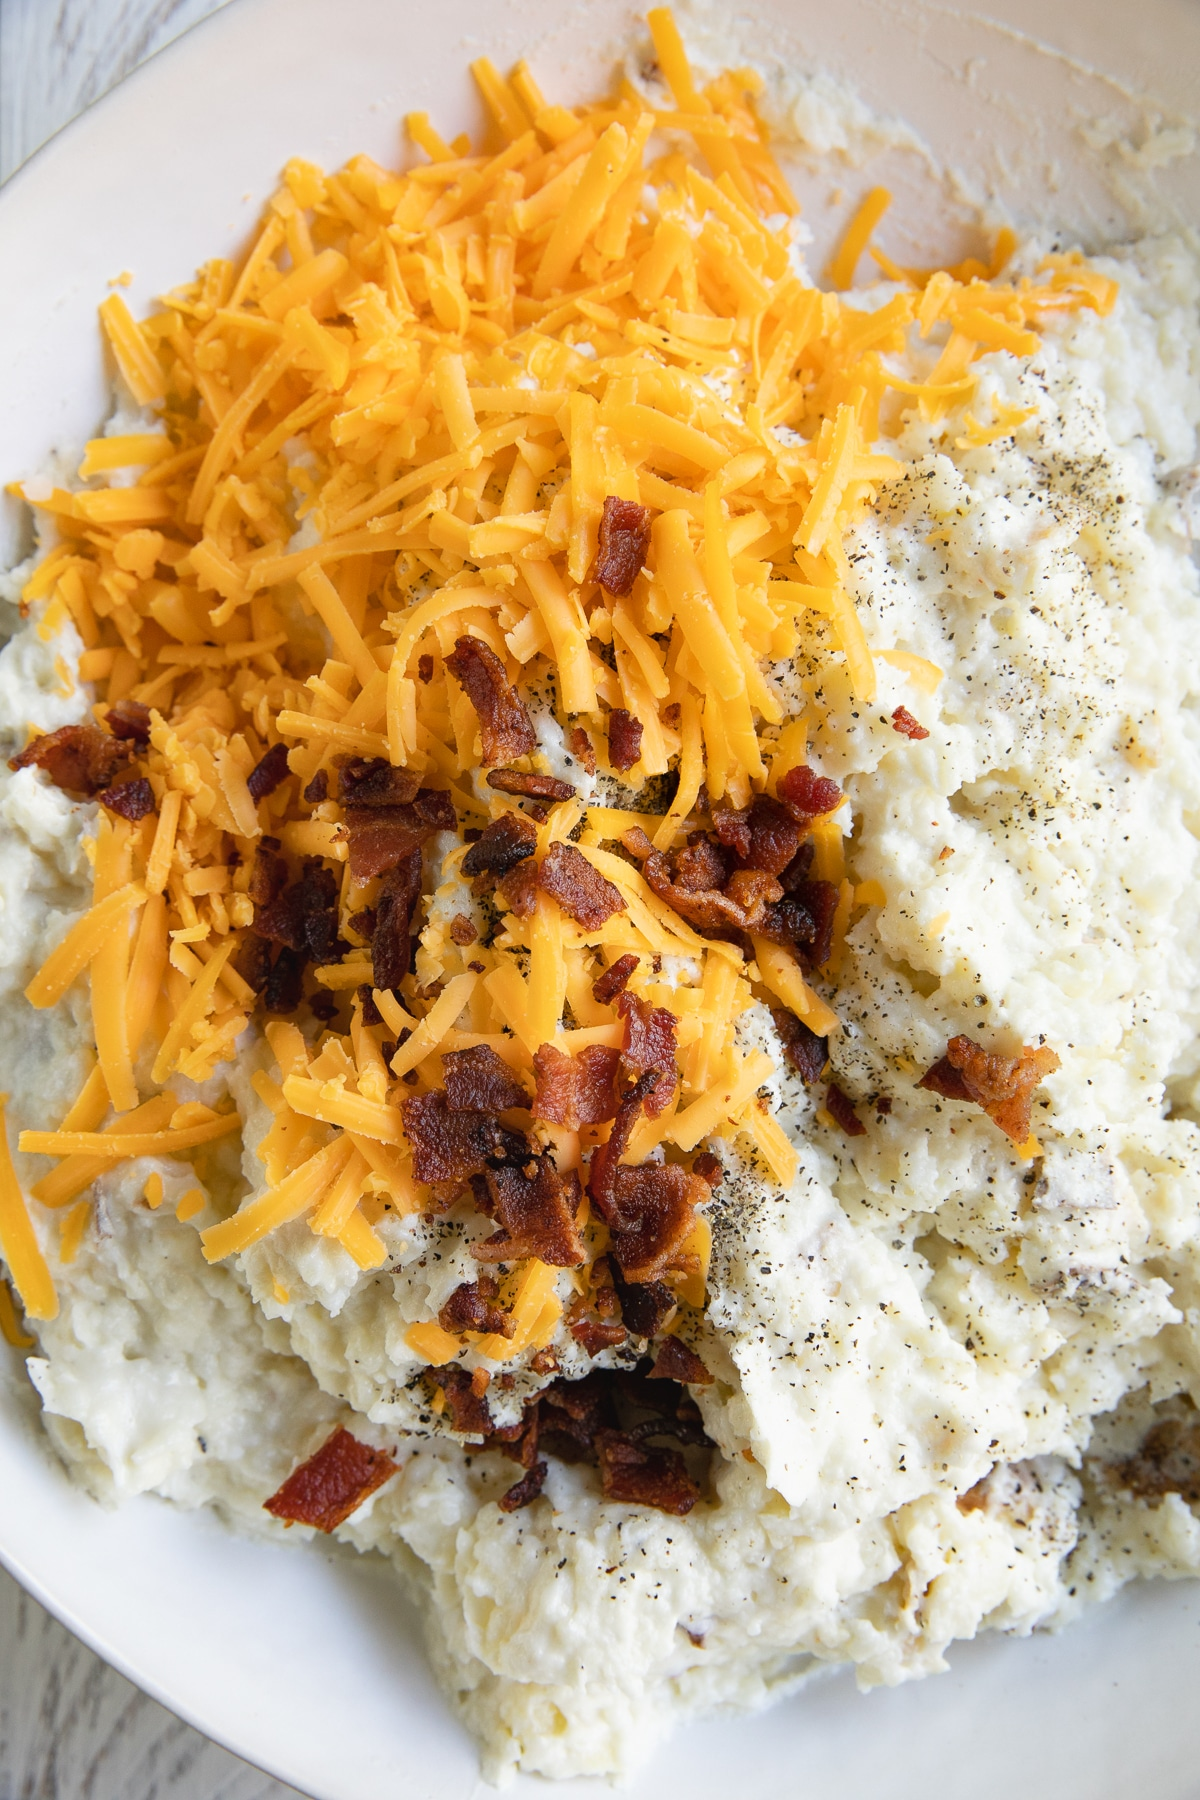 Large white mixing bowl filled with creamy mashed potatoes, shredded cheddar cheese, and bacon bits.